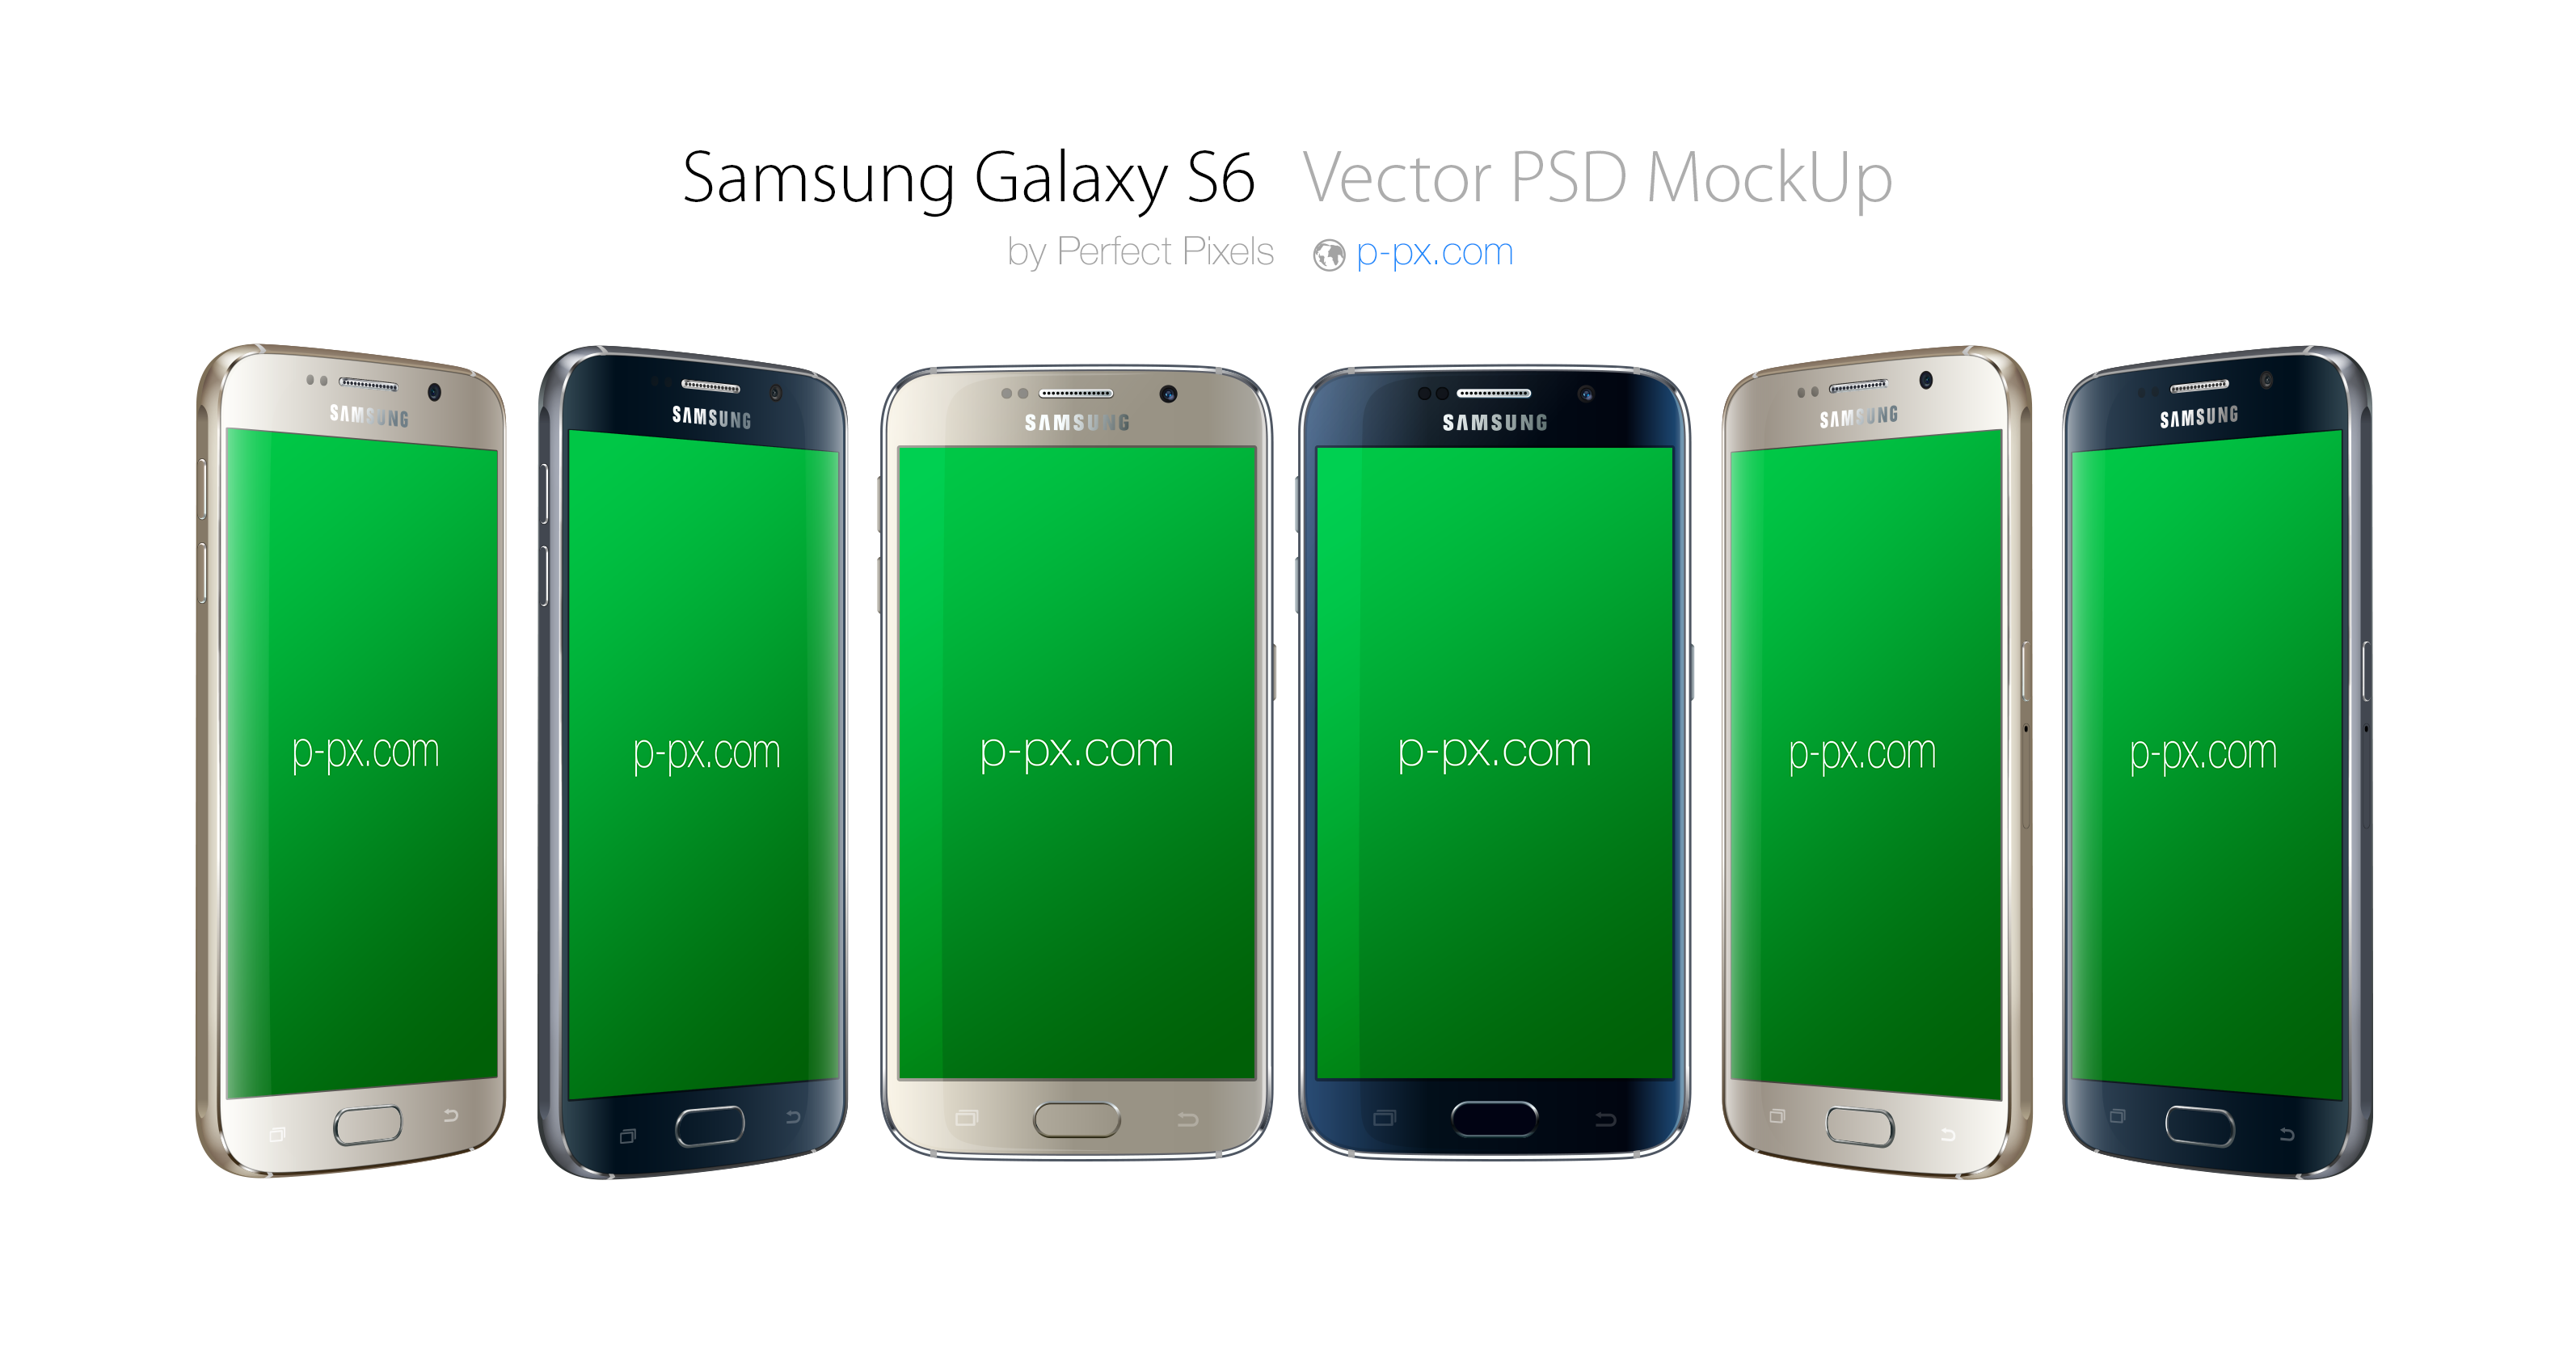 Samsung Galaxy S6 All Colors Front + 3/4 Angled PSD + AI Vector Mockup